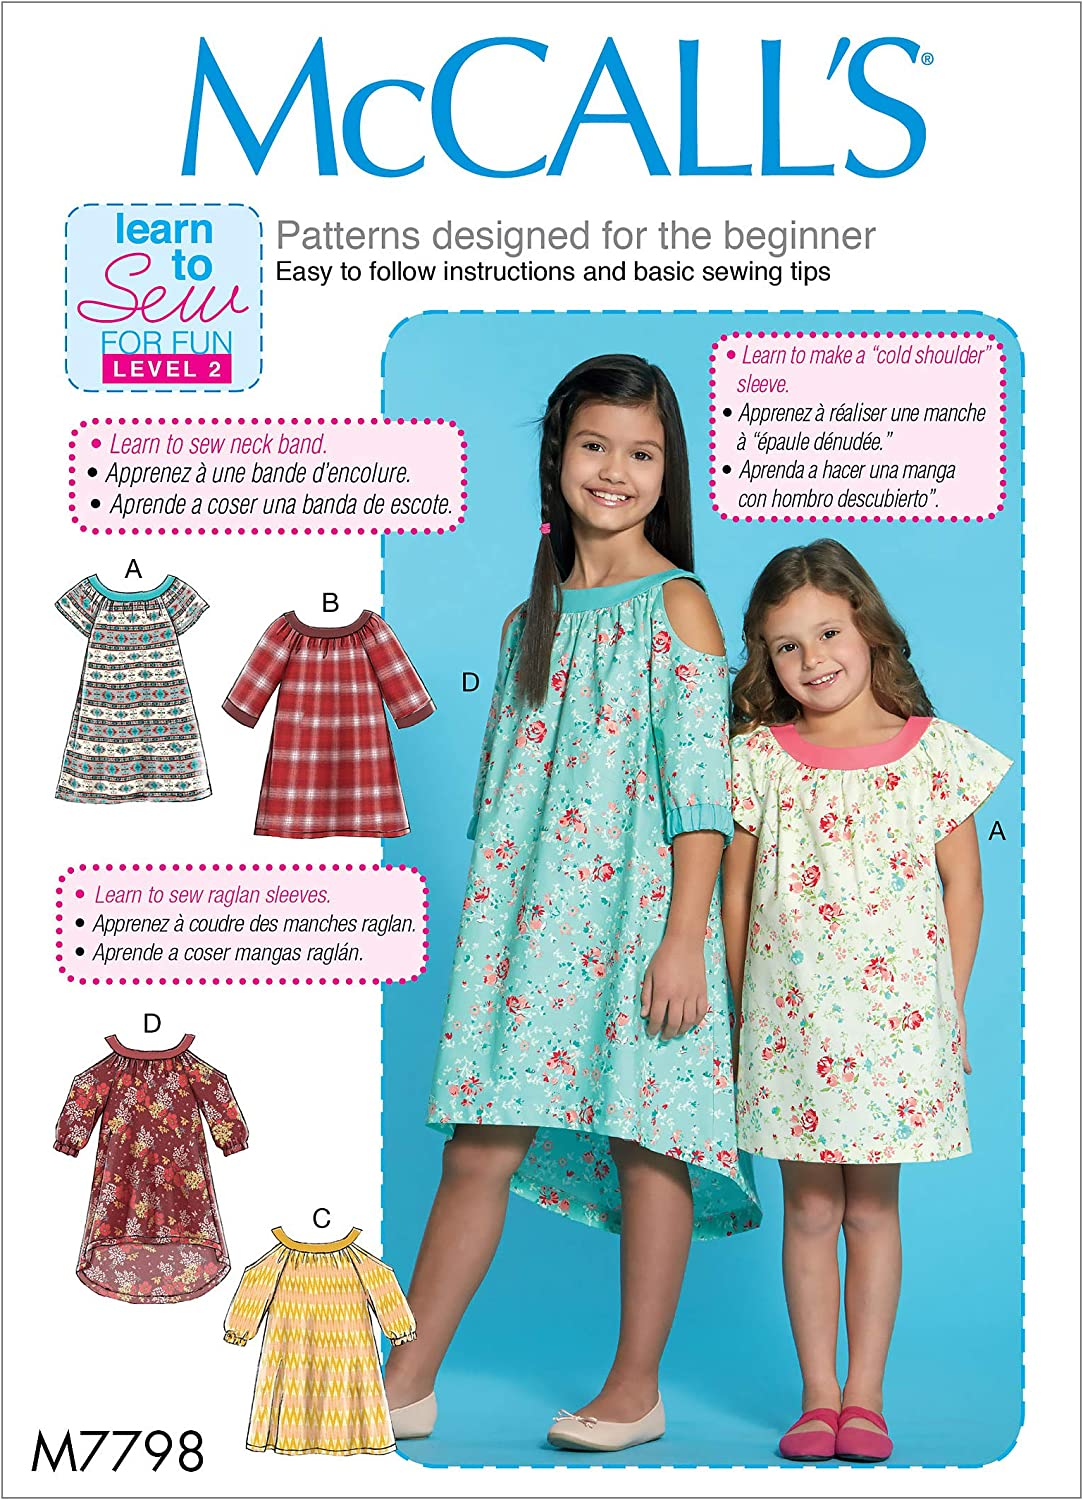 McCall Pattern Company McCall's M7798 Learn Girl's Cold Shoulder and Raglan Sleeve Dress Sewing Patterns, Sizes 7-14, 7-8-10-12-14, White